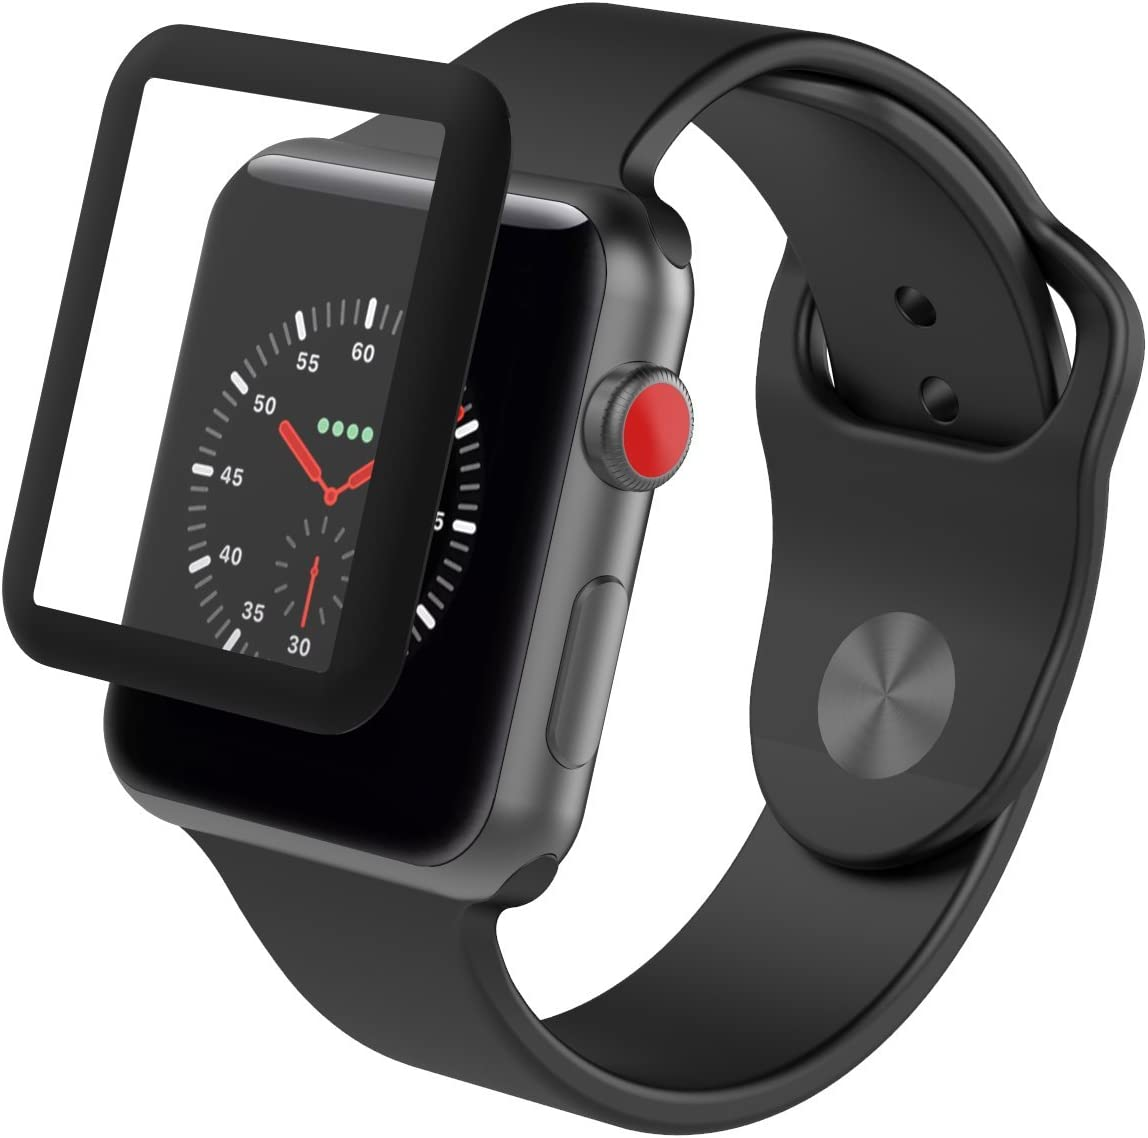 ZAGG InvisibleShield Glass Luxe HD Clarity + Reinforced, Tempered Glass Screen Protector for Apple Watch (38mm) Series 3 - Black